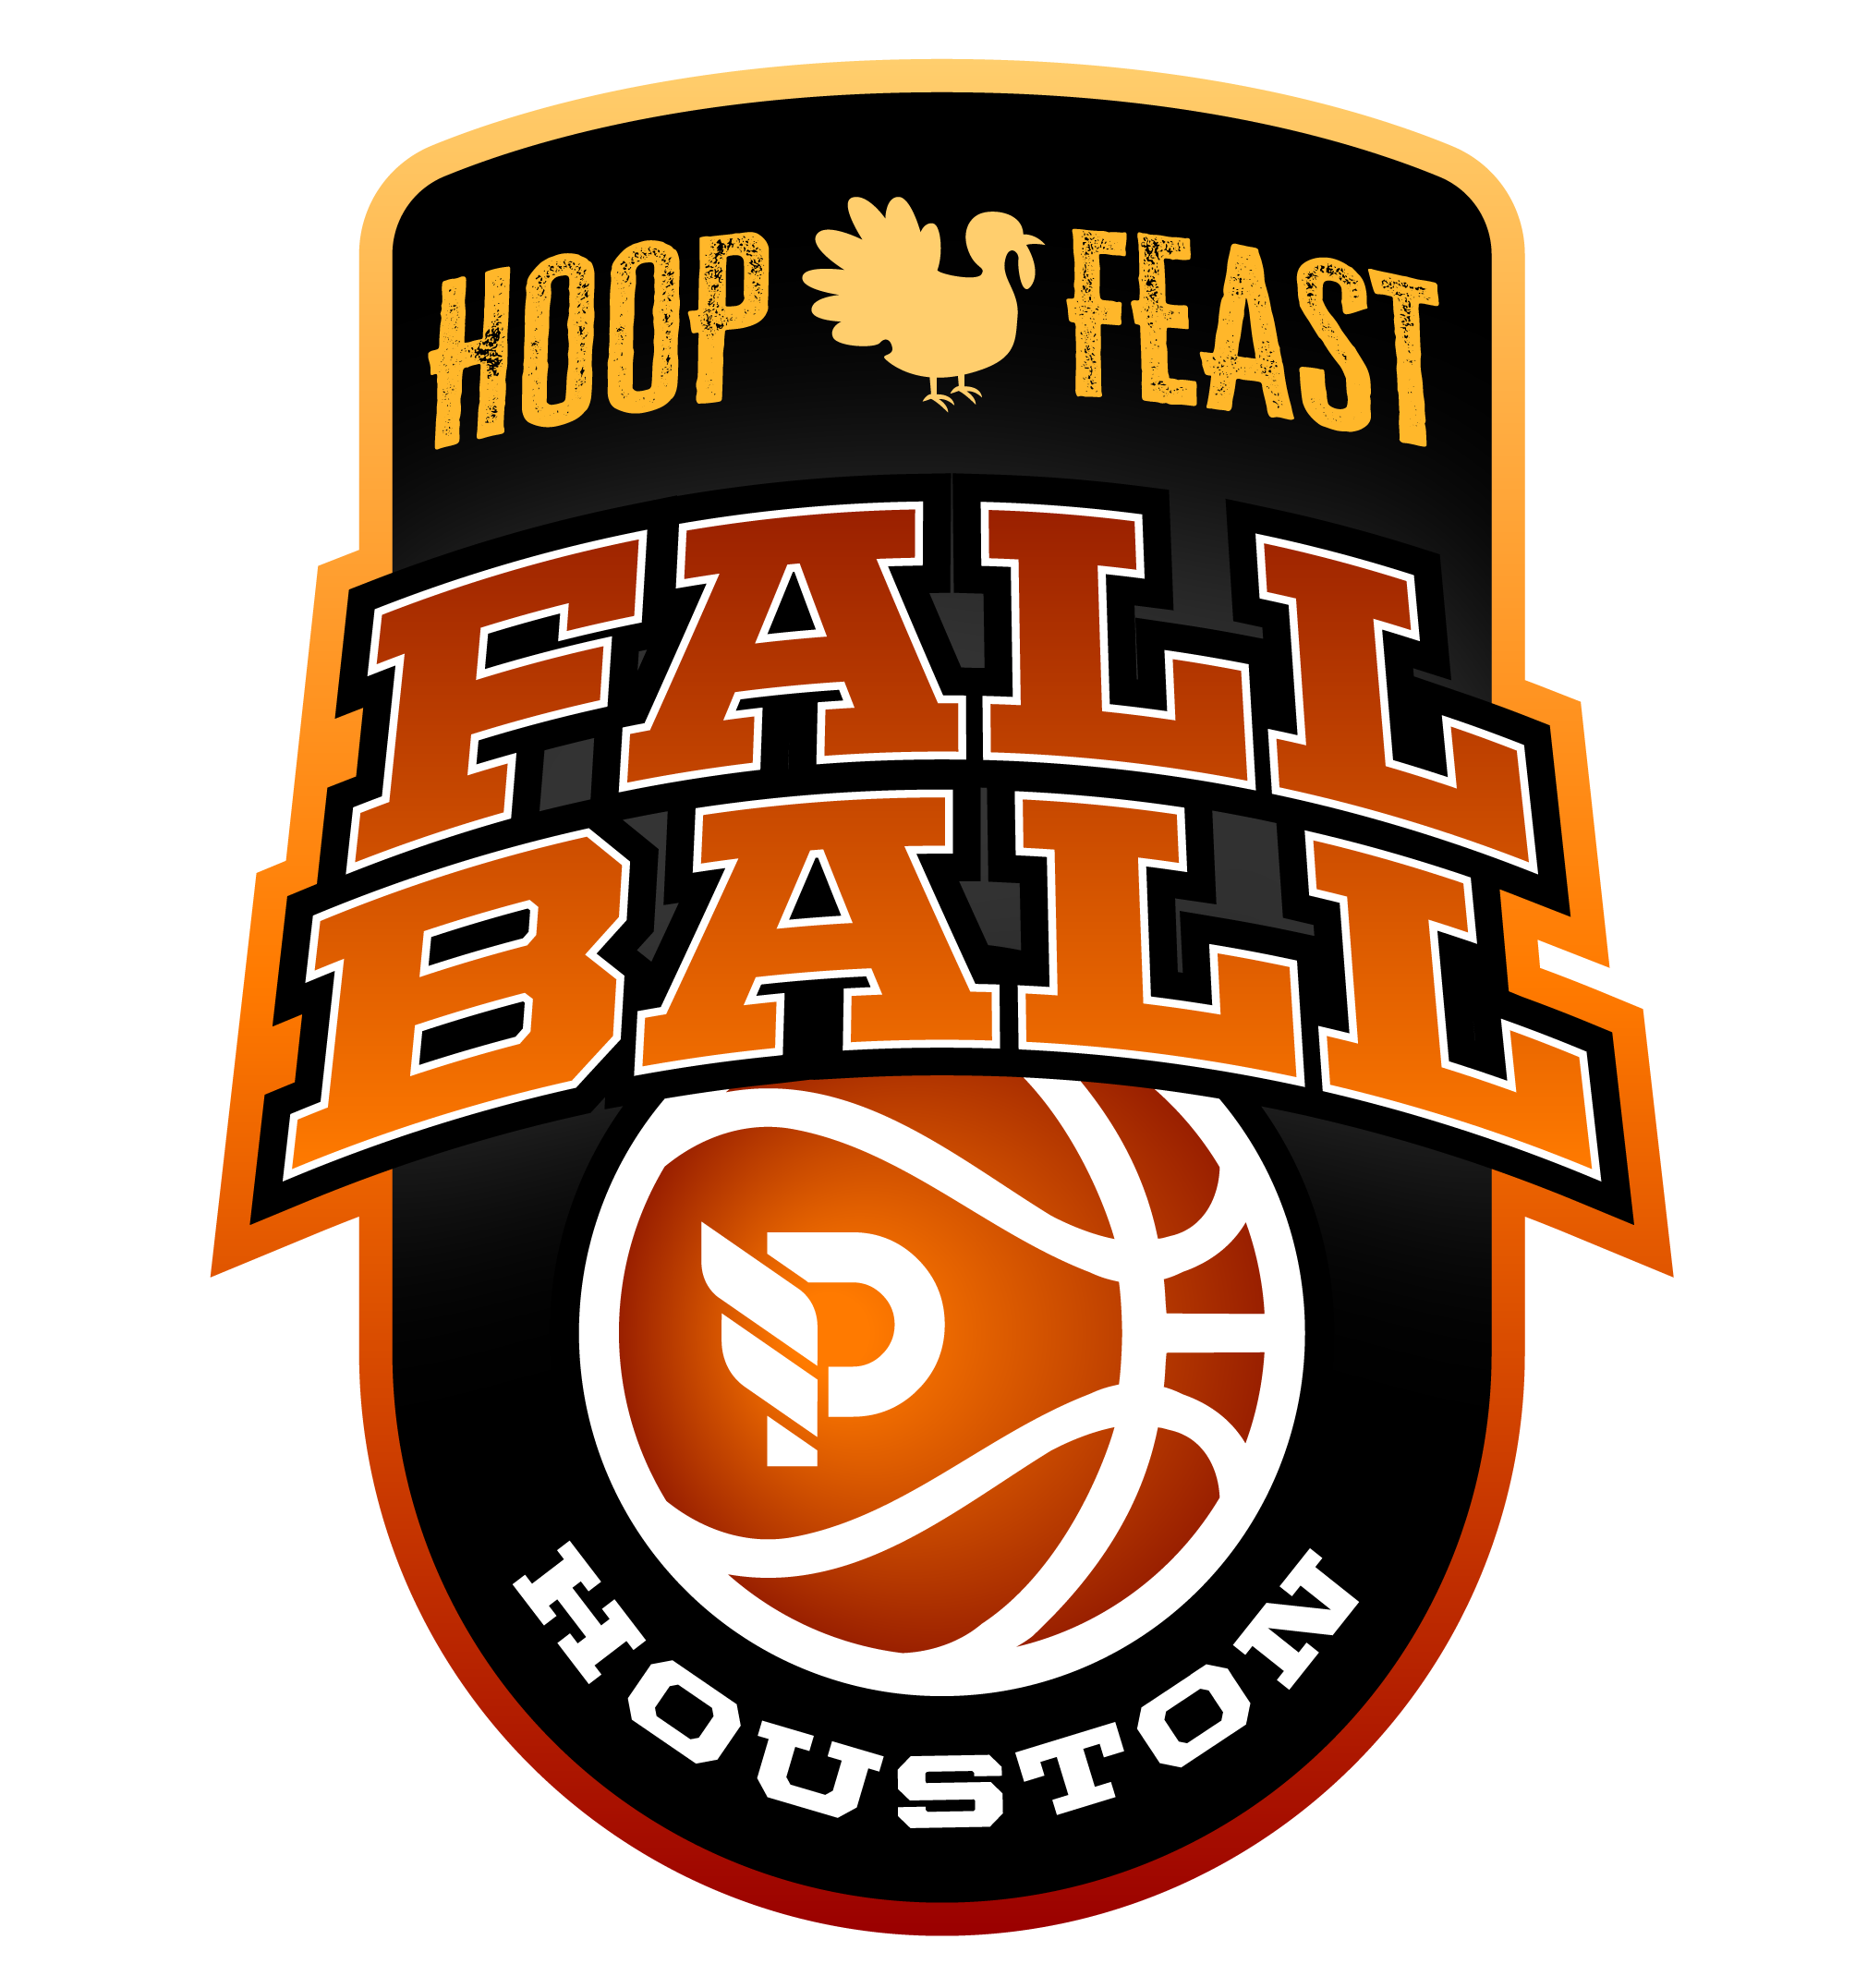 Hoopfeast- Houston